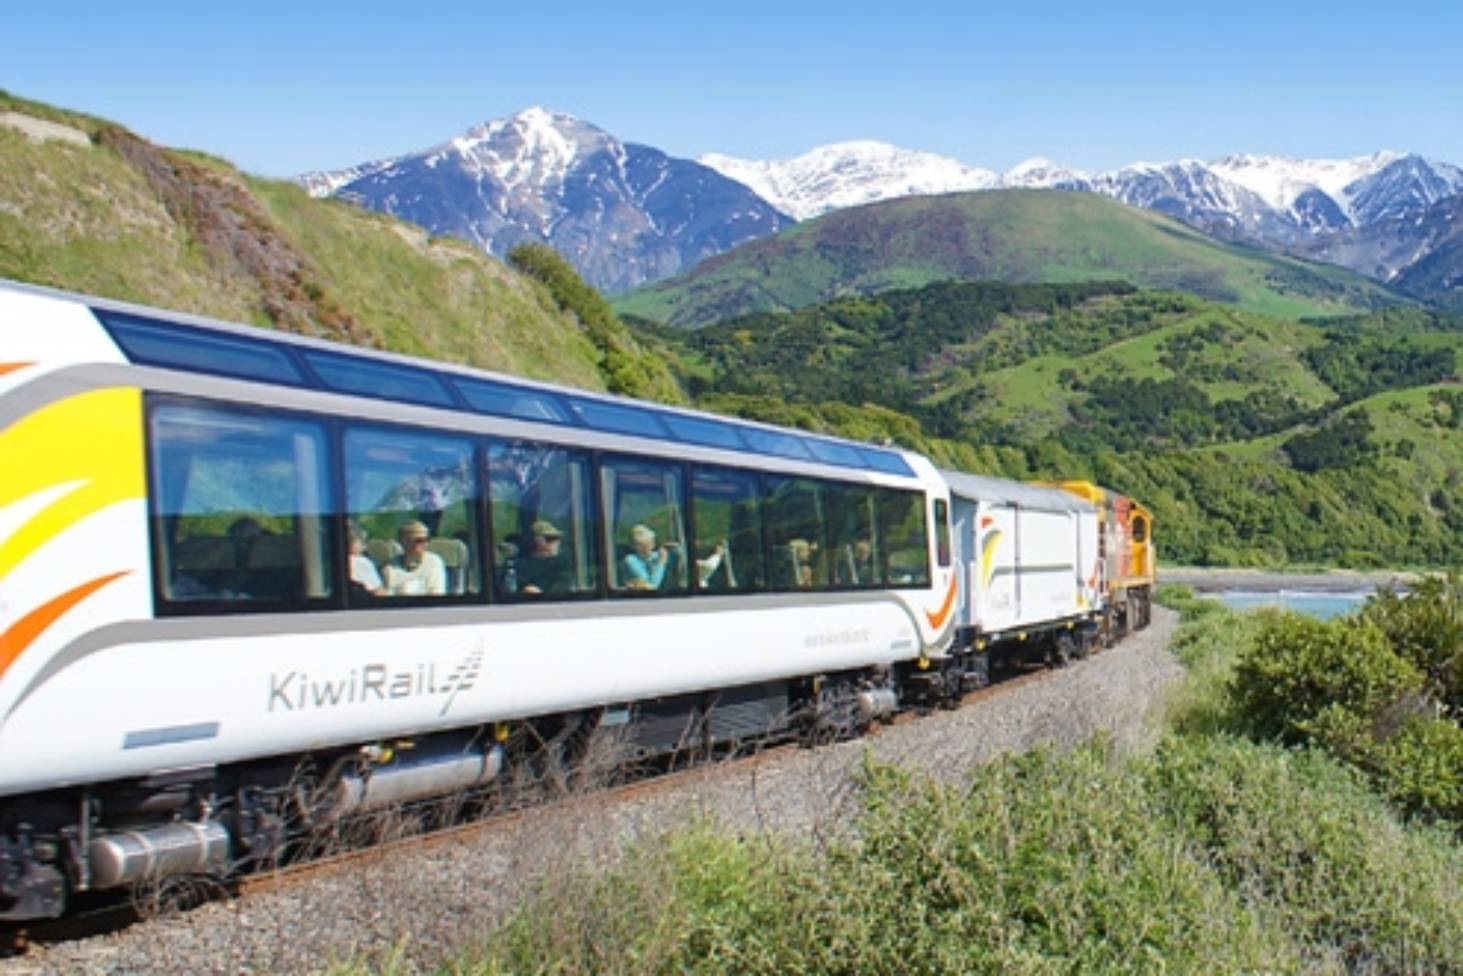 Aboard the Coastal Pacific train: What's changed since the